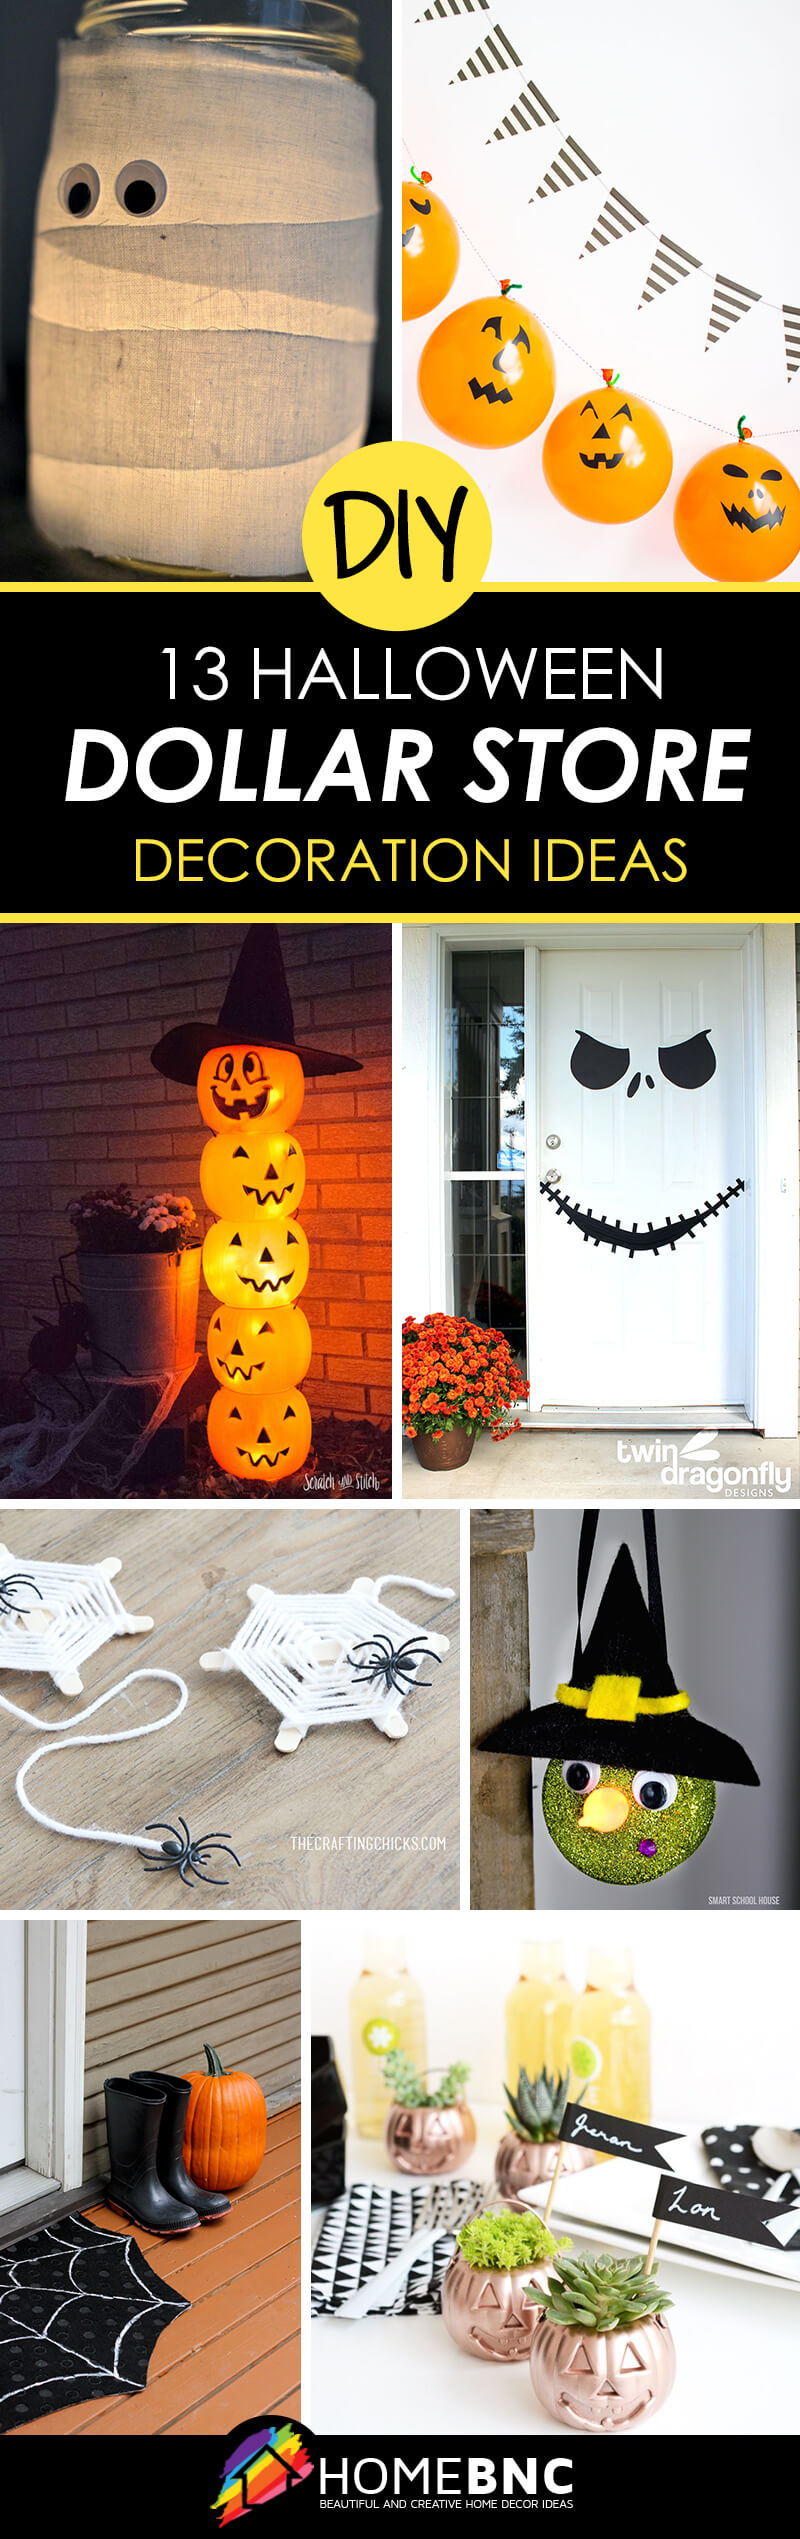 DIY Dollar Store Halloween Decoration Ideas